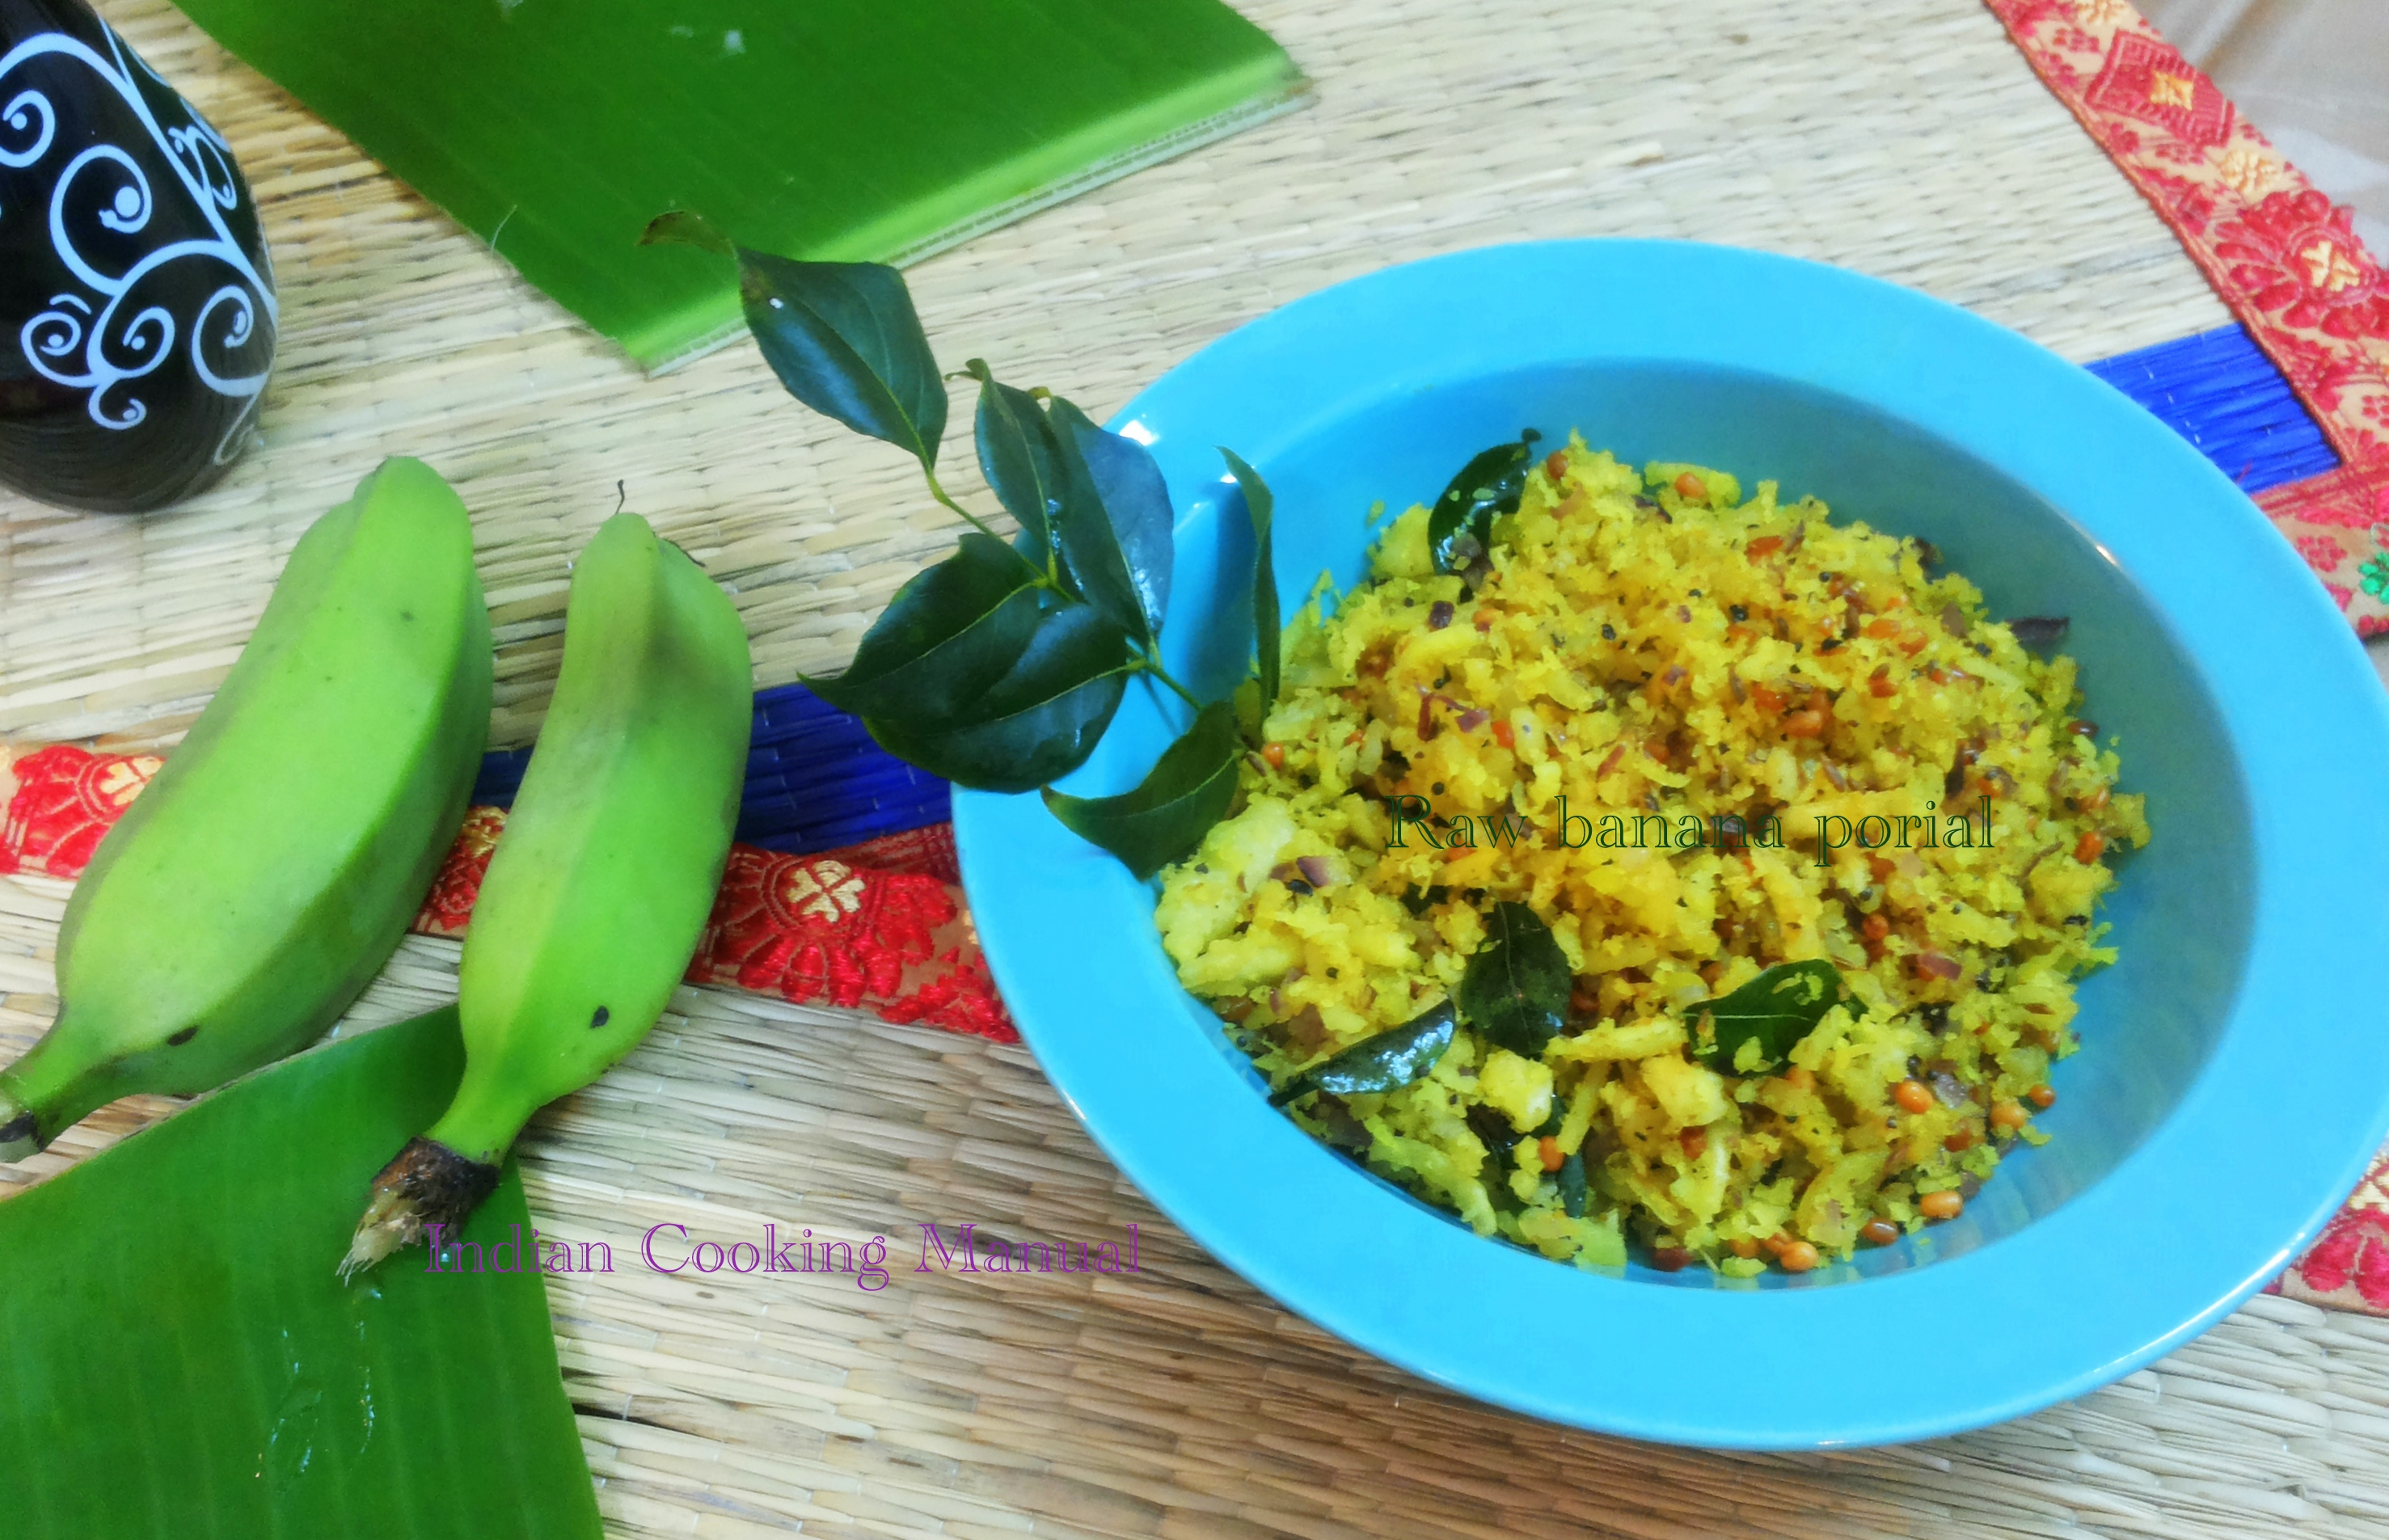 Raw banana poriyal/dry sabji (south Indian style)